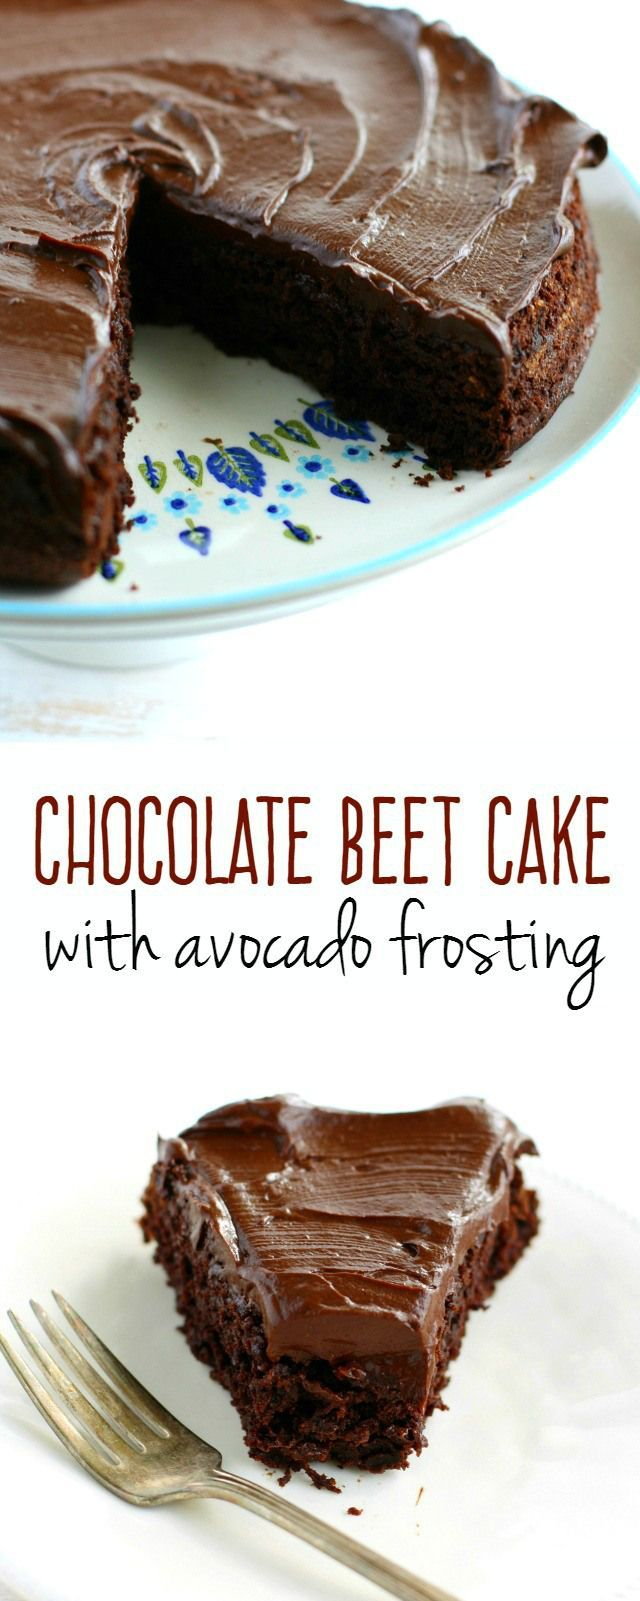 Chocolate beet cake with chocolate avocado frosting is not only incredibly delicious, it's also a healthier dessert choice! So yummy no one will ever guess it's healthy though! Gluten free, vegan, and free of the top 8 allergens!